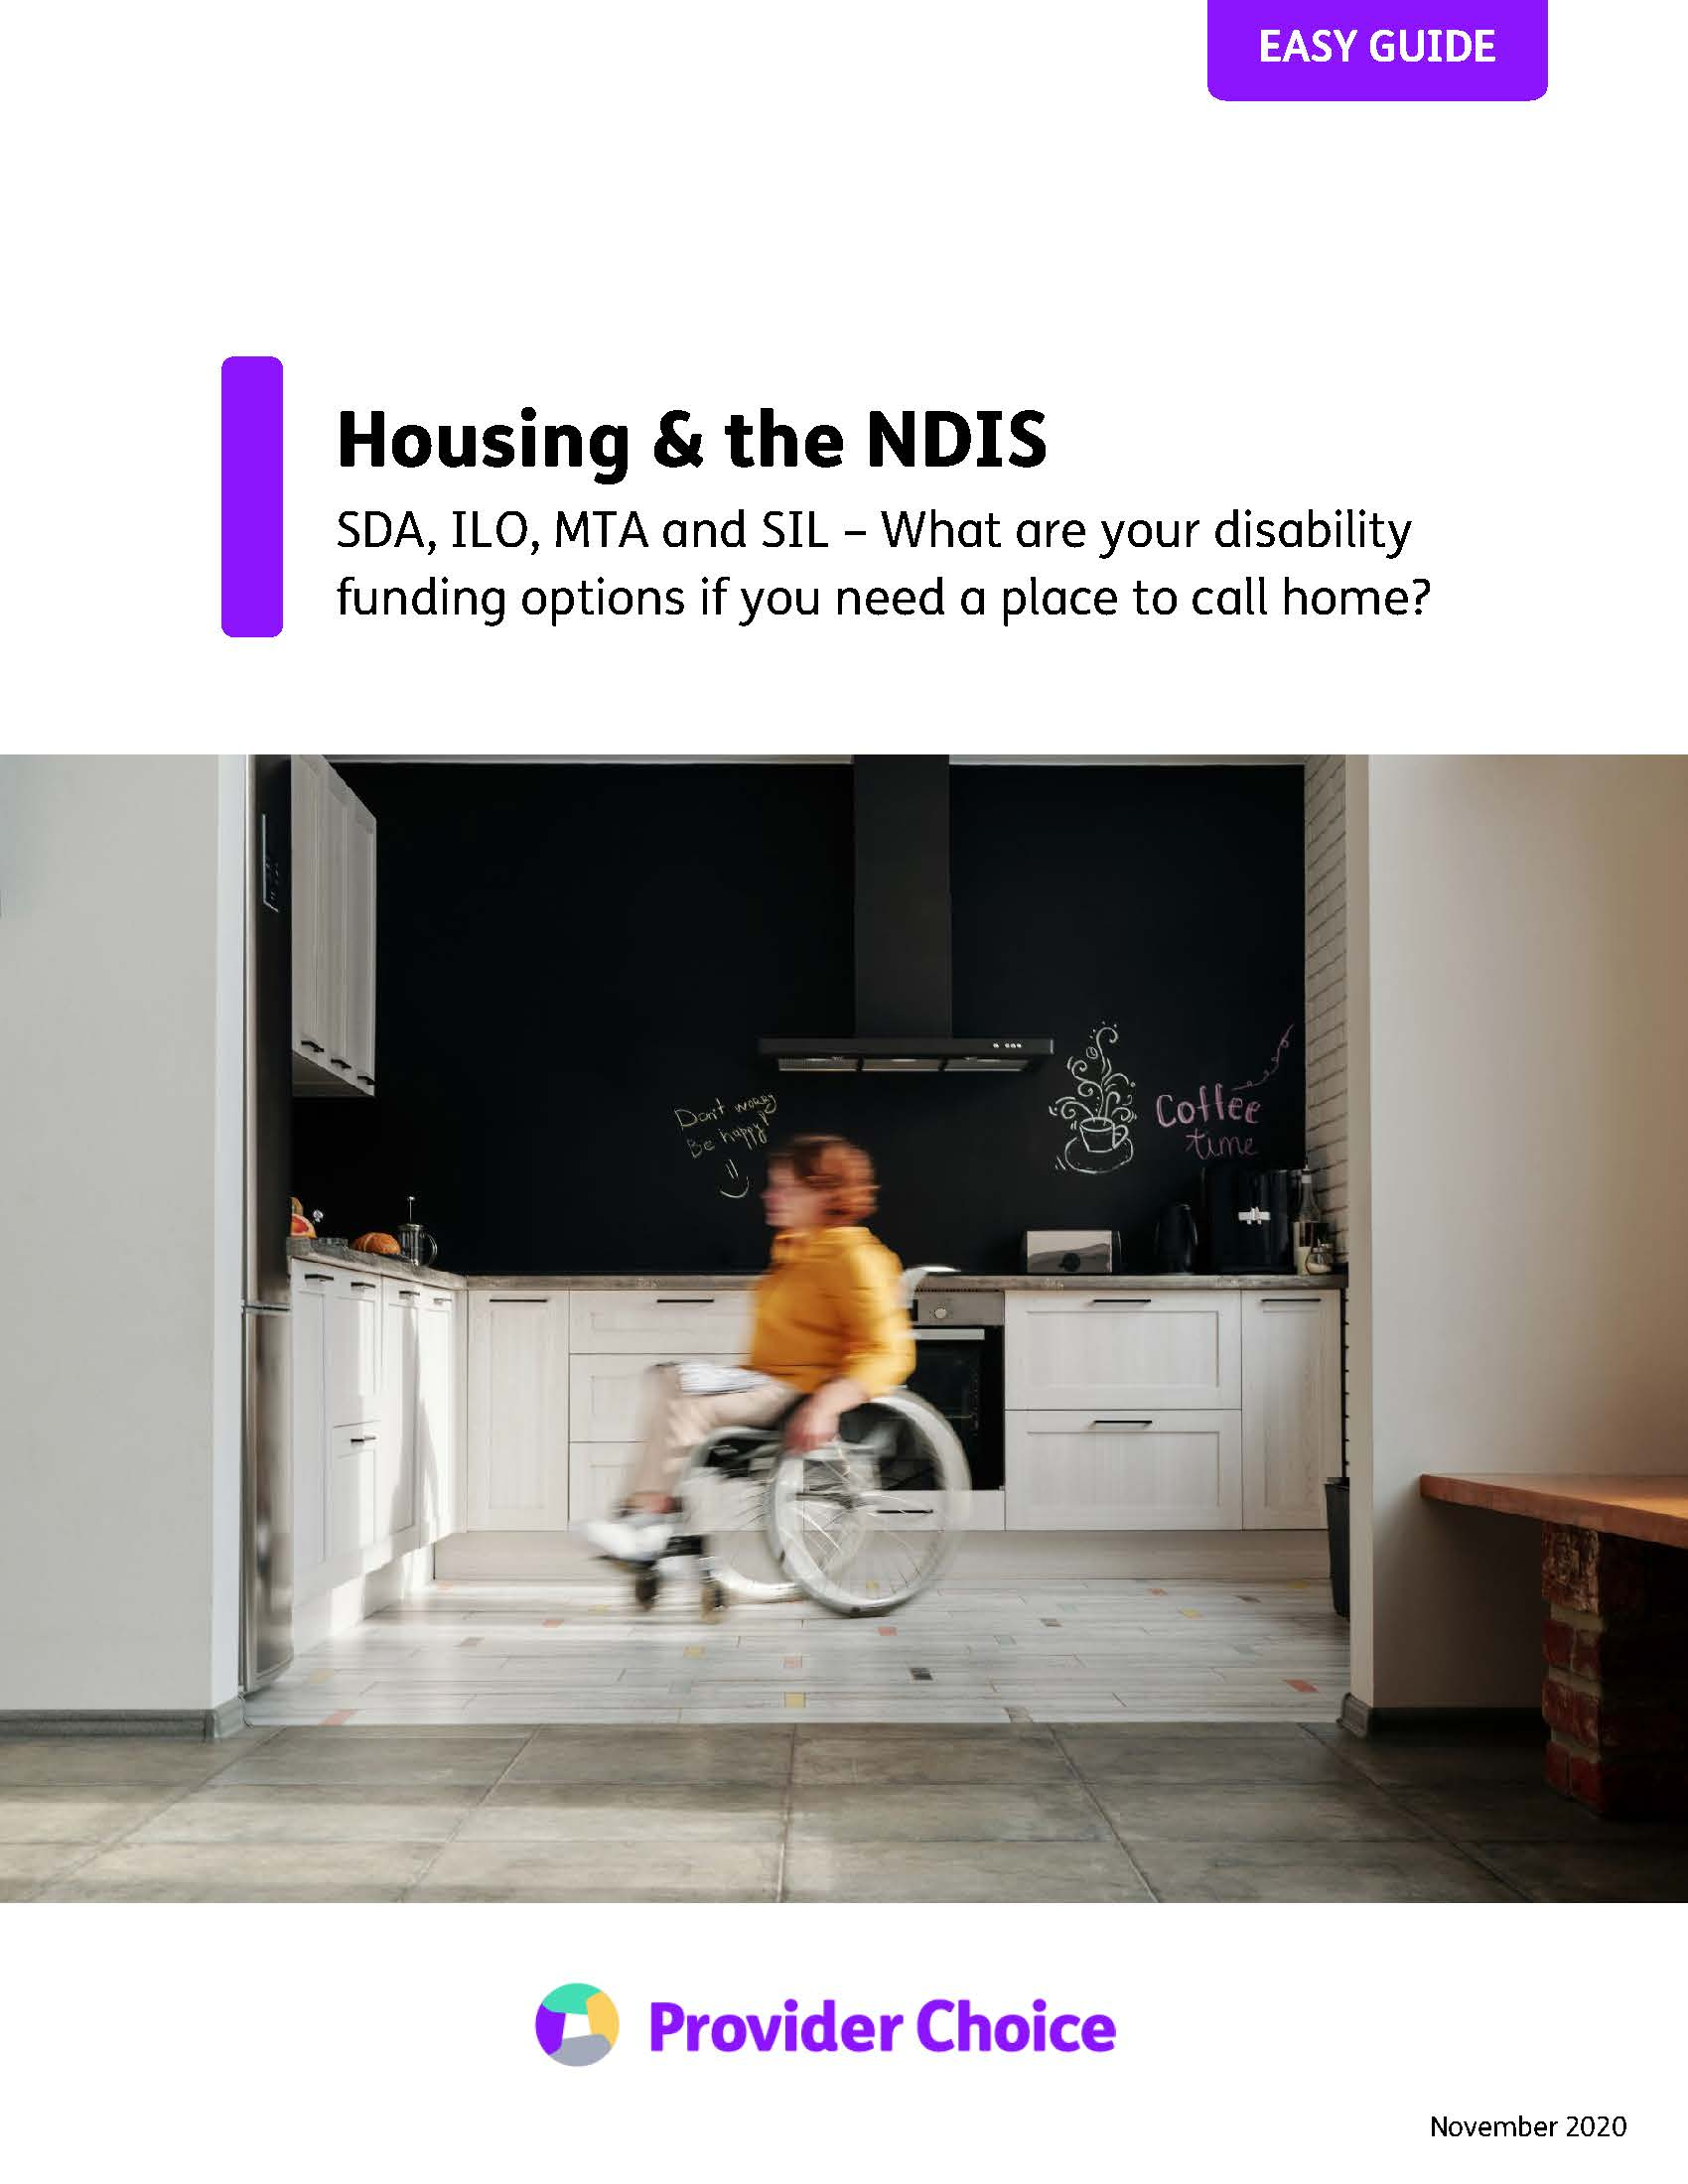 Guide to NDIS Housing options: From SDA to ILO and SIL - what the heck does it all mean?